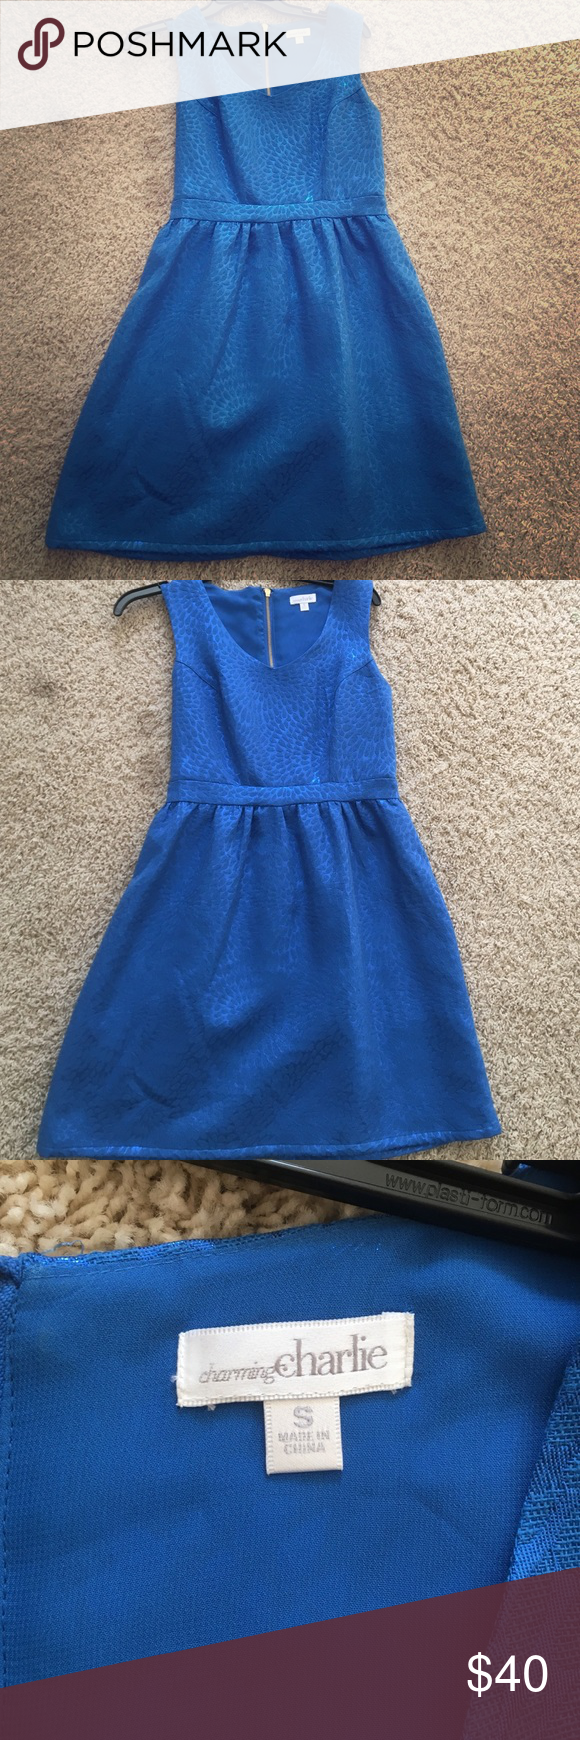 Royal Blue cocktail dress Charming Charlie's Royal Blue cocktail dress. Worn once to holiday party. In excellent condition. Charming Charlie Dresses